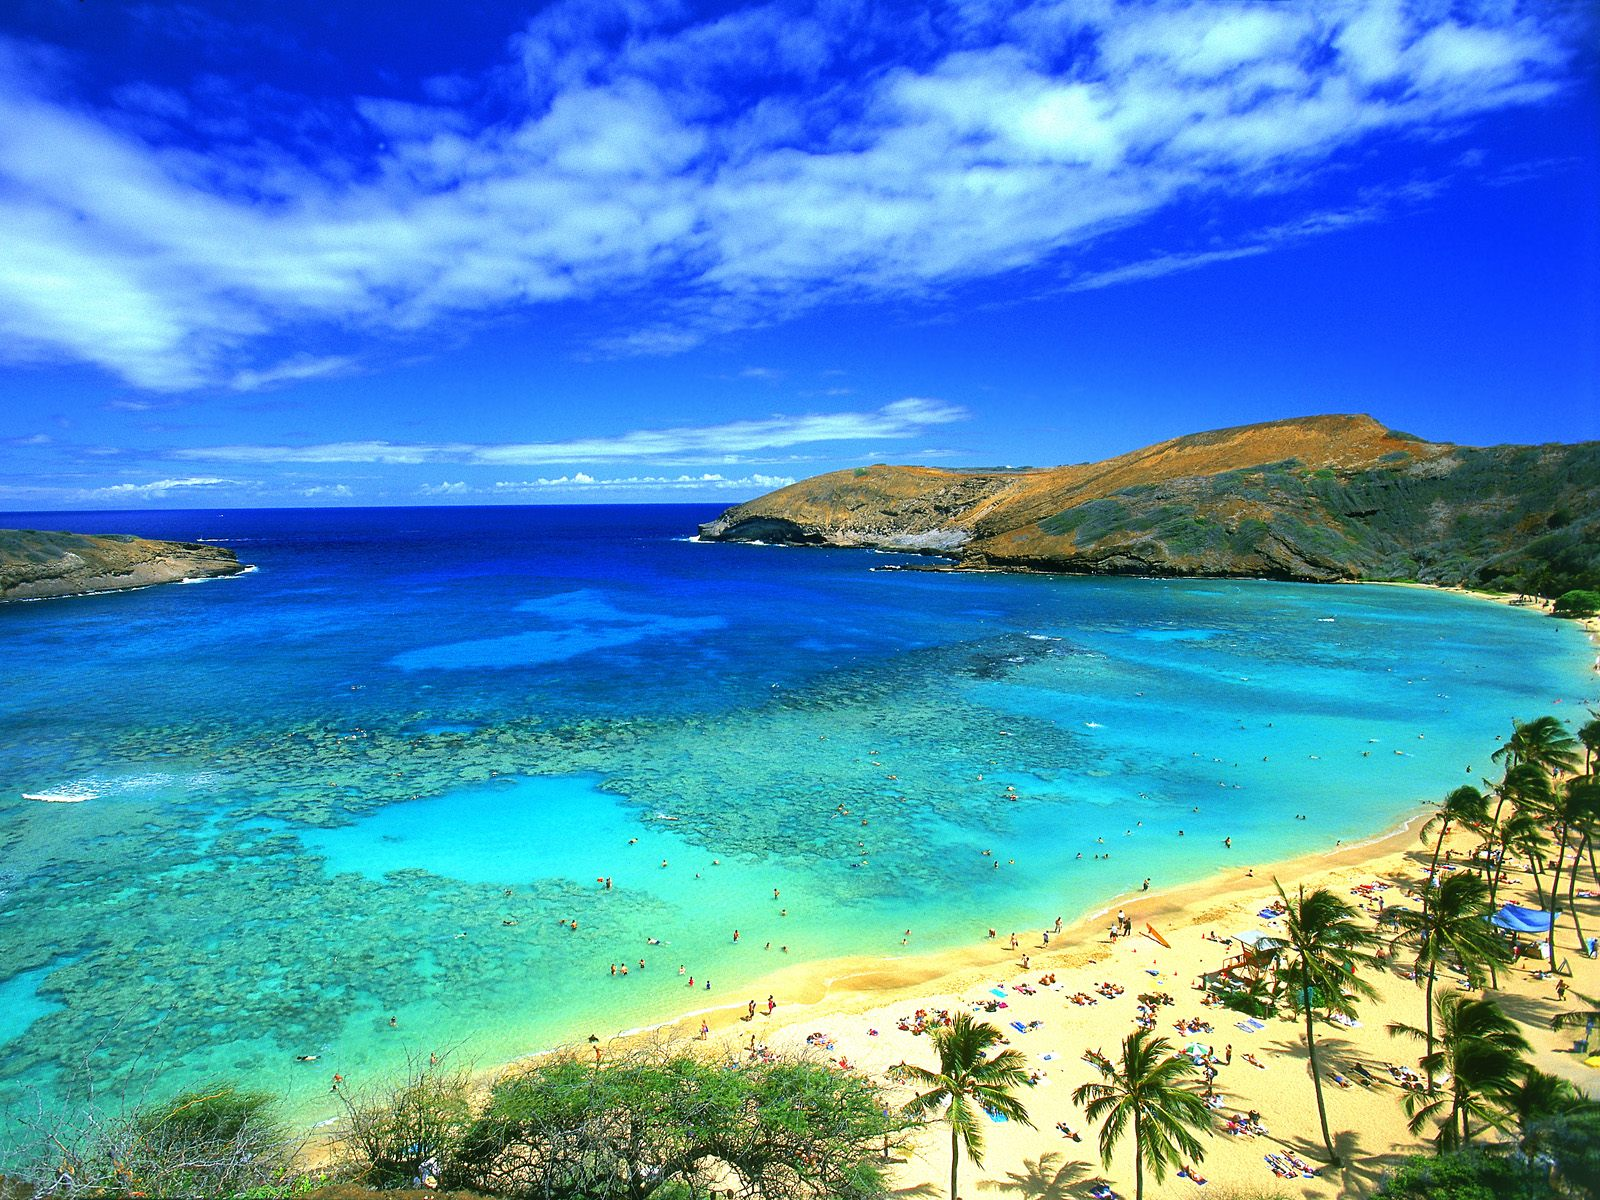 hawaii beach wallpapers hawaii beach hd wallpapers hawaii beach hd 1600x1200